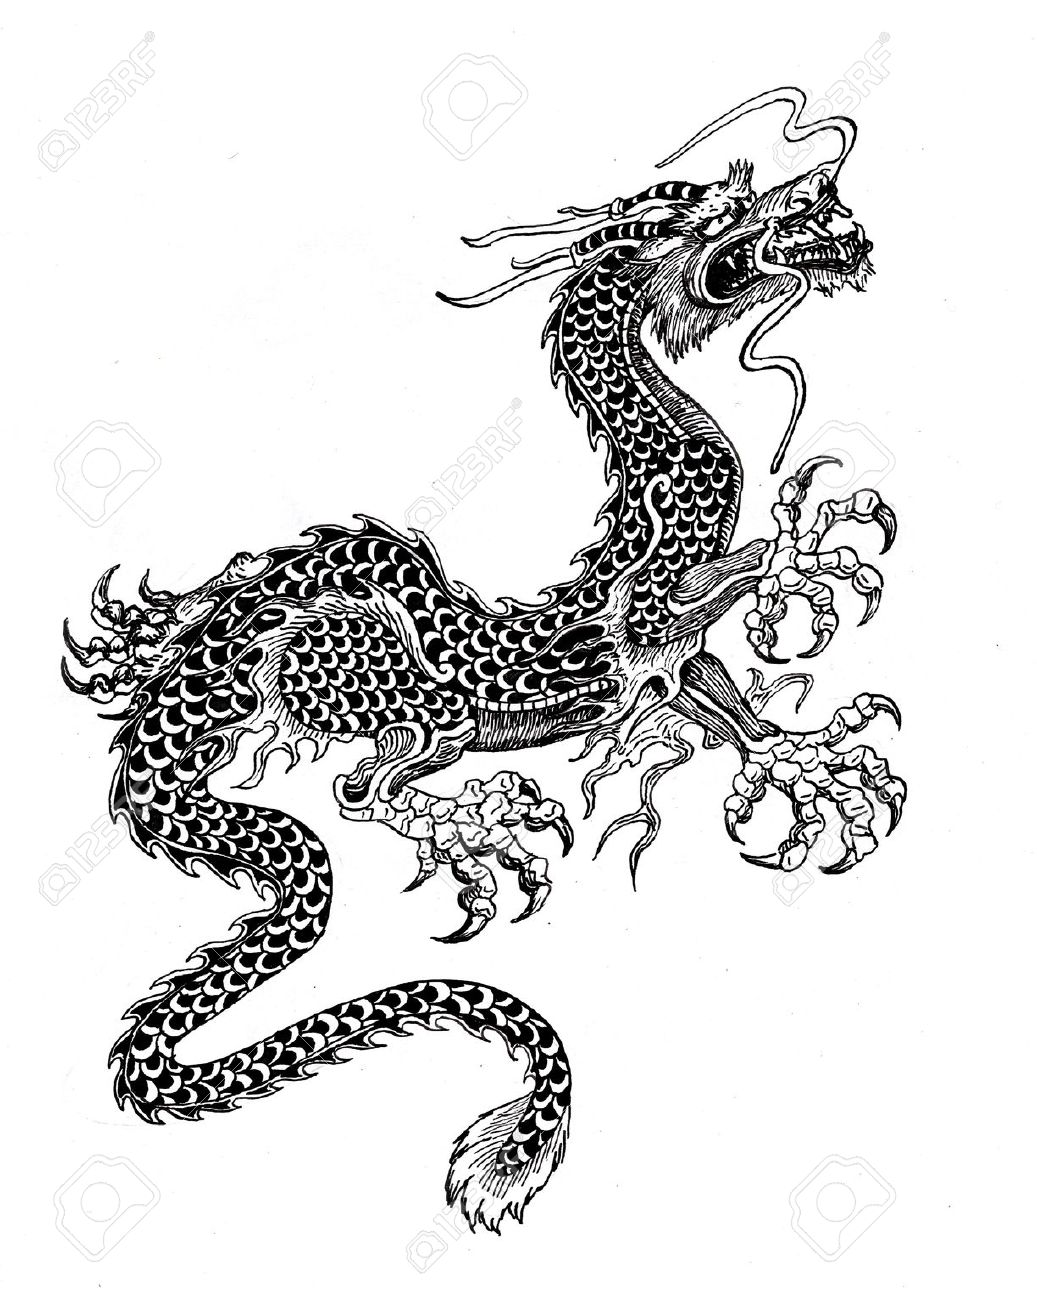 chinese dragon stock photo picture and royalty free image image